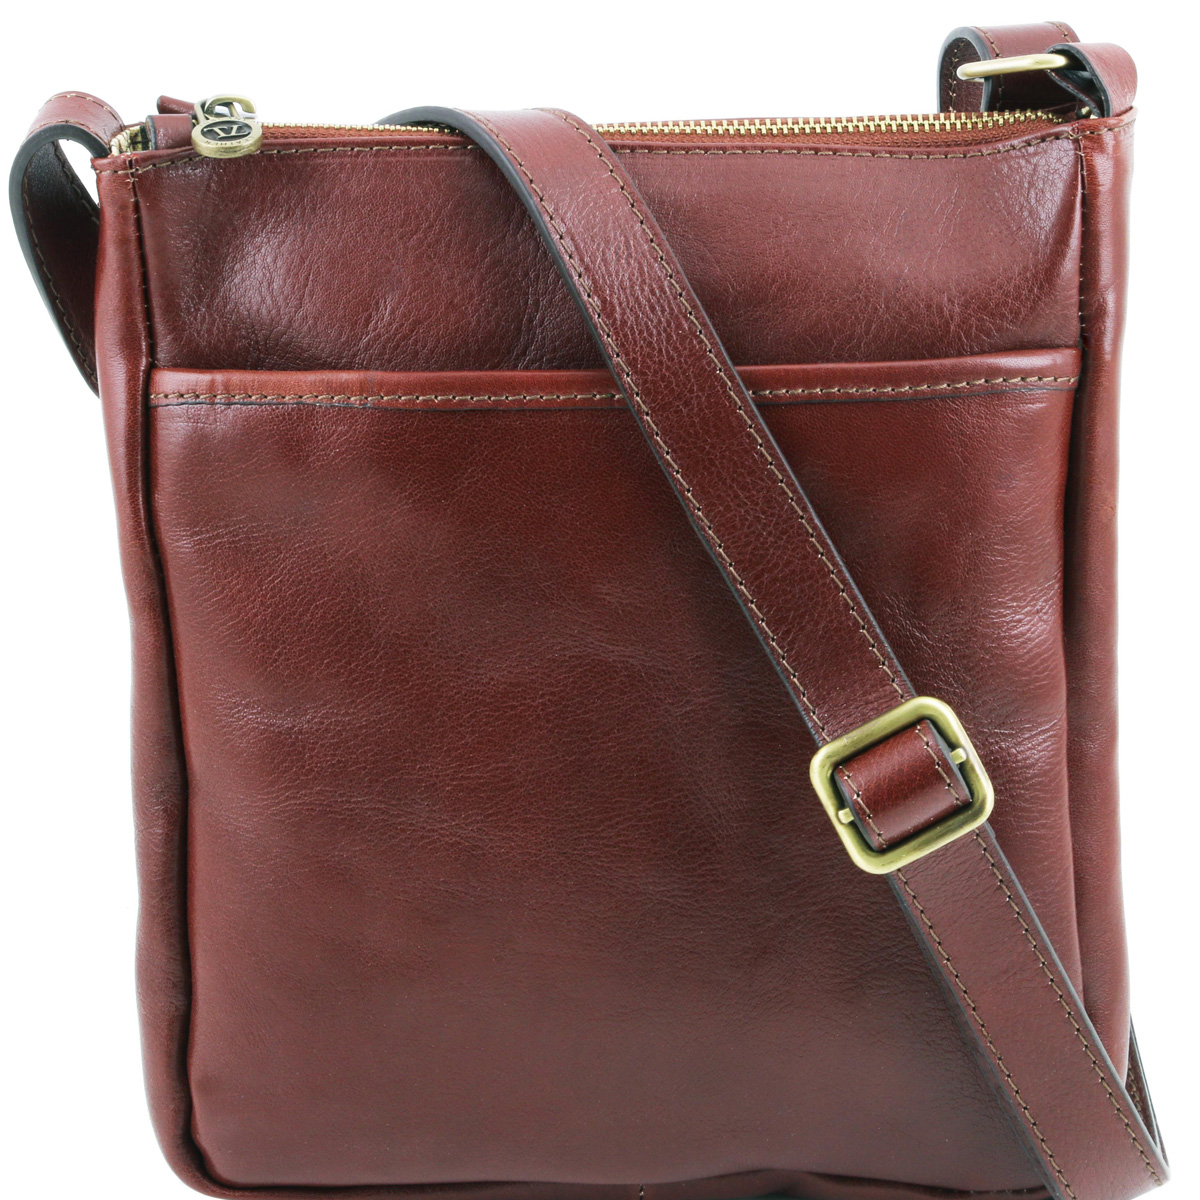 Tuscany Leather Axelväska Jason Crossbody Bag TL141300 99fe1bc0dd99b